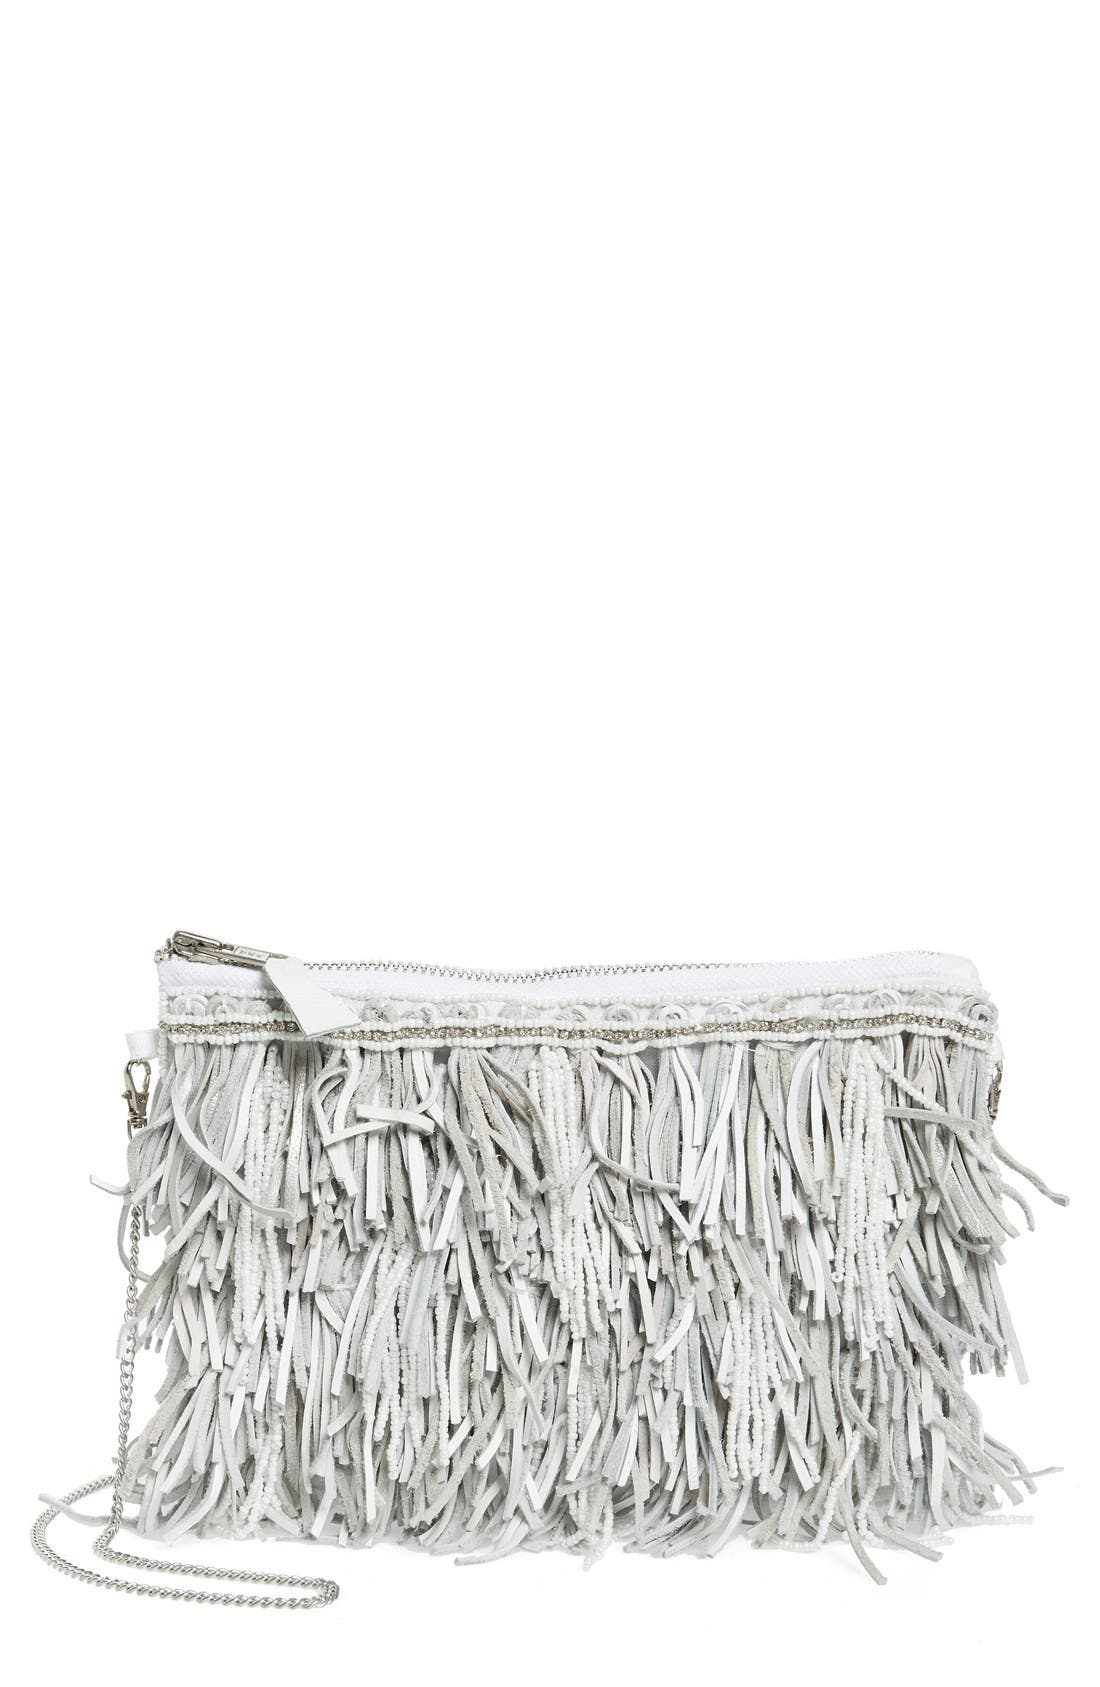 Alternate Image 1 Selected - G-lish Bead & Leather Fringe Crossbody Bag